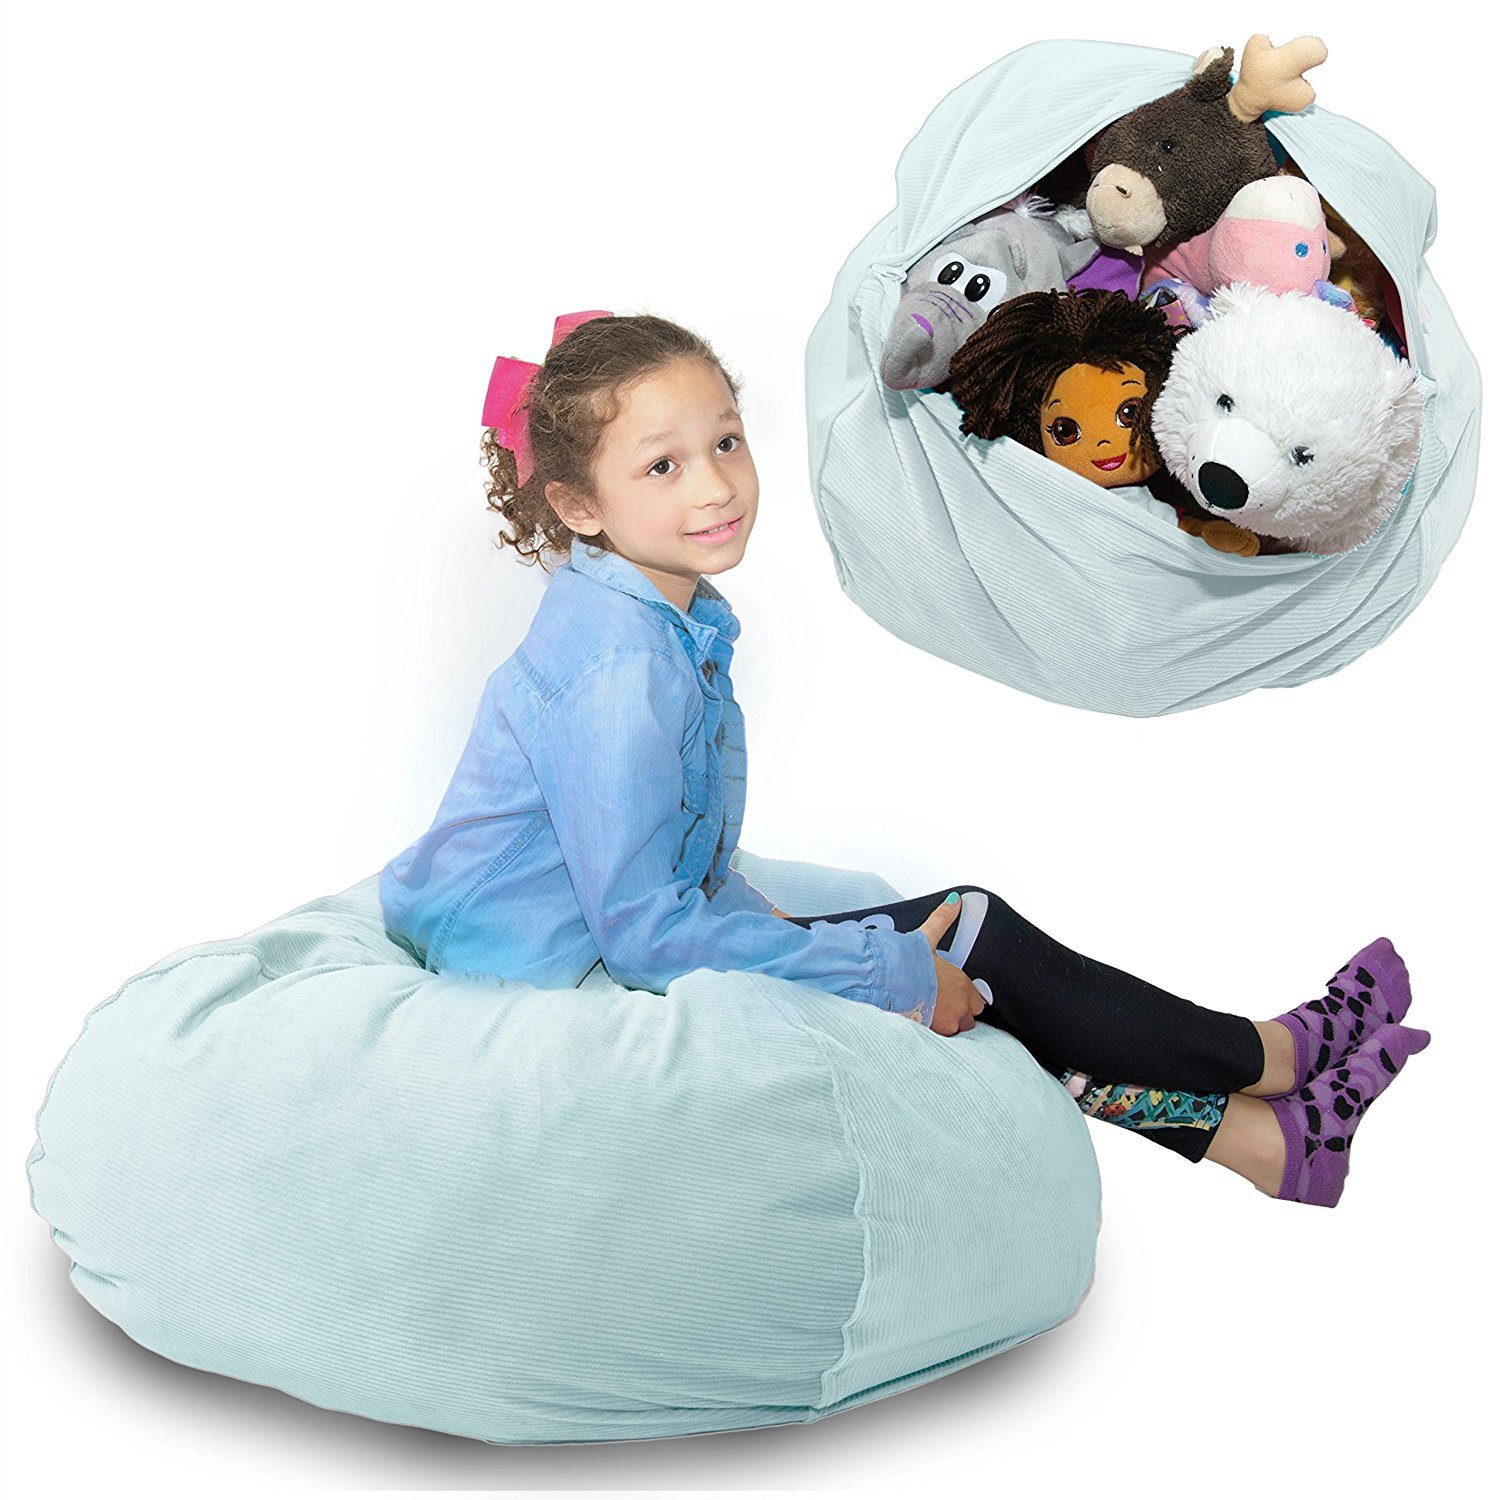 stuffed animal storage bean bag large super soft corduroy fabric kids prefer over. Black Bedroom Furniture Sets. Home Design Ideas